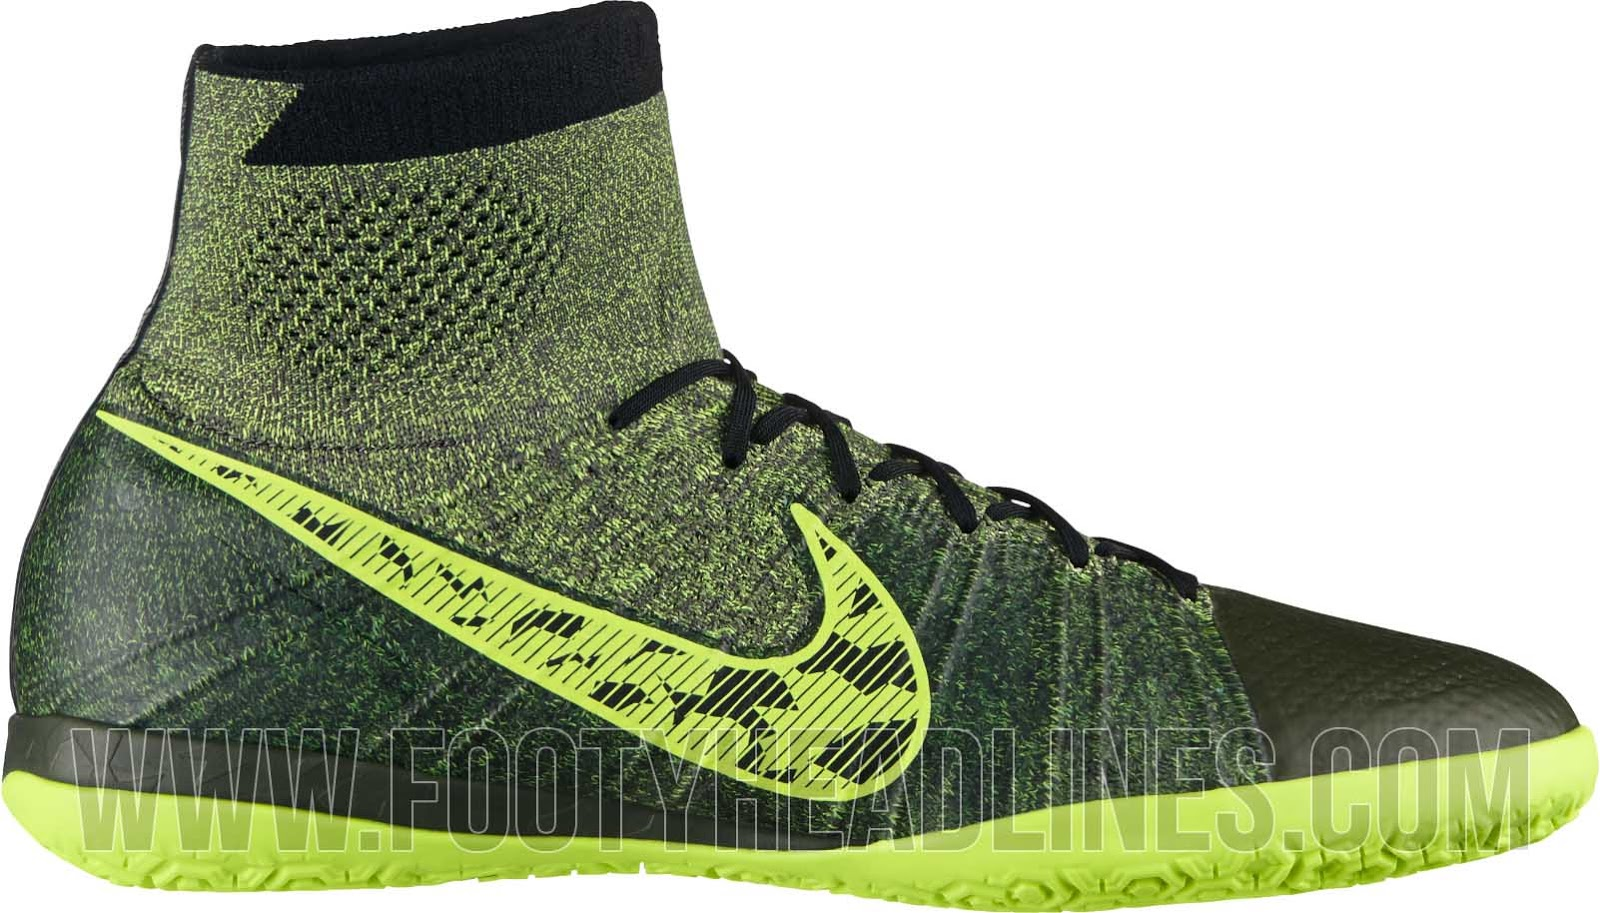 ... The new Nike Elastico 14-15 Boot Colorway is mainly dark grey (Midnight  Fog  CHUTEIRA ... 2fa2634fe3b30